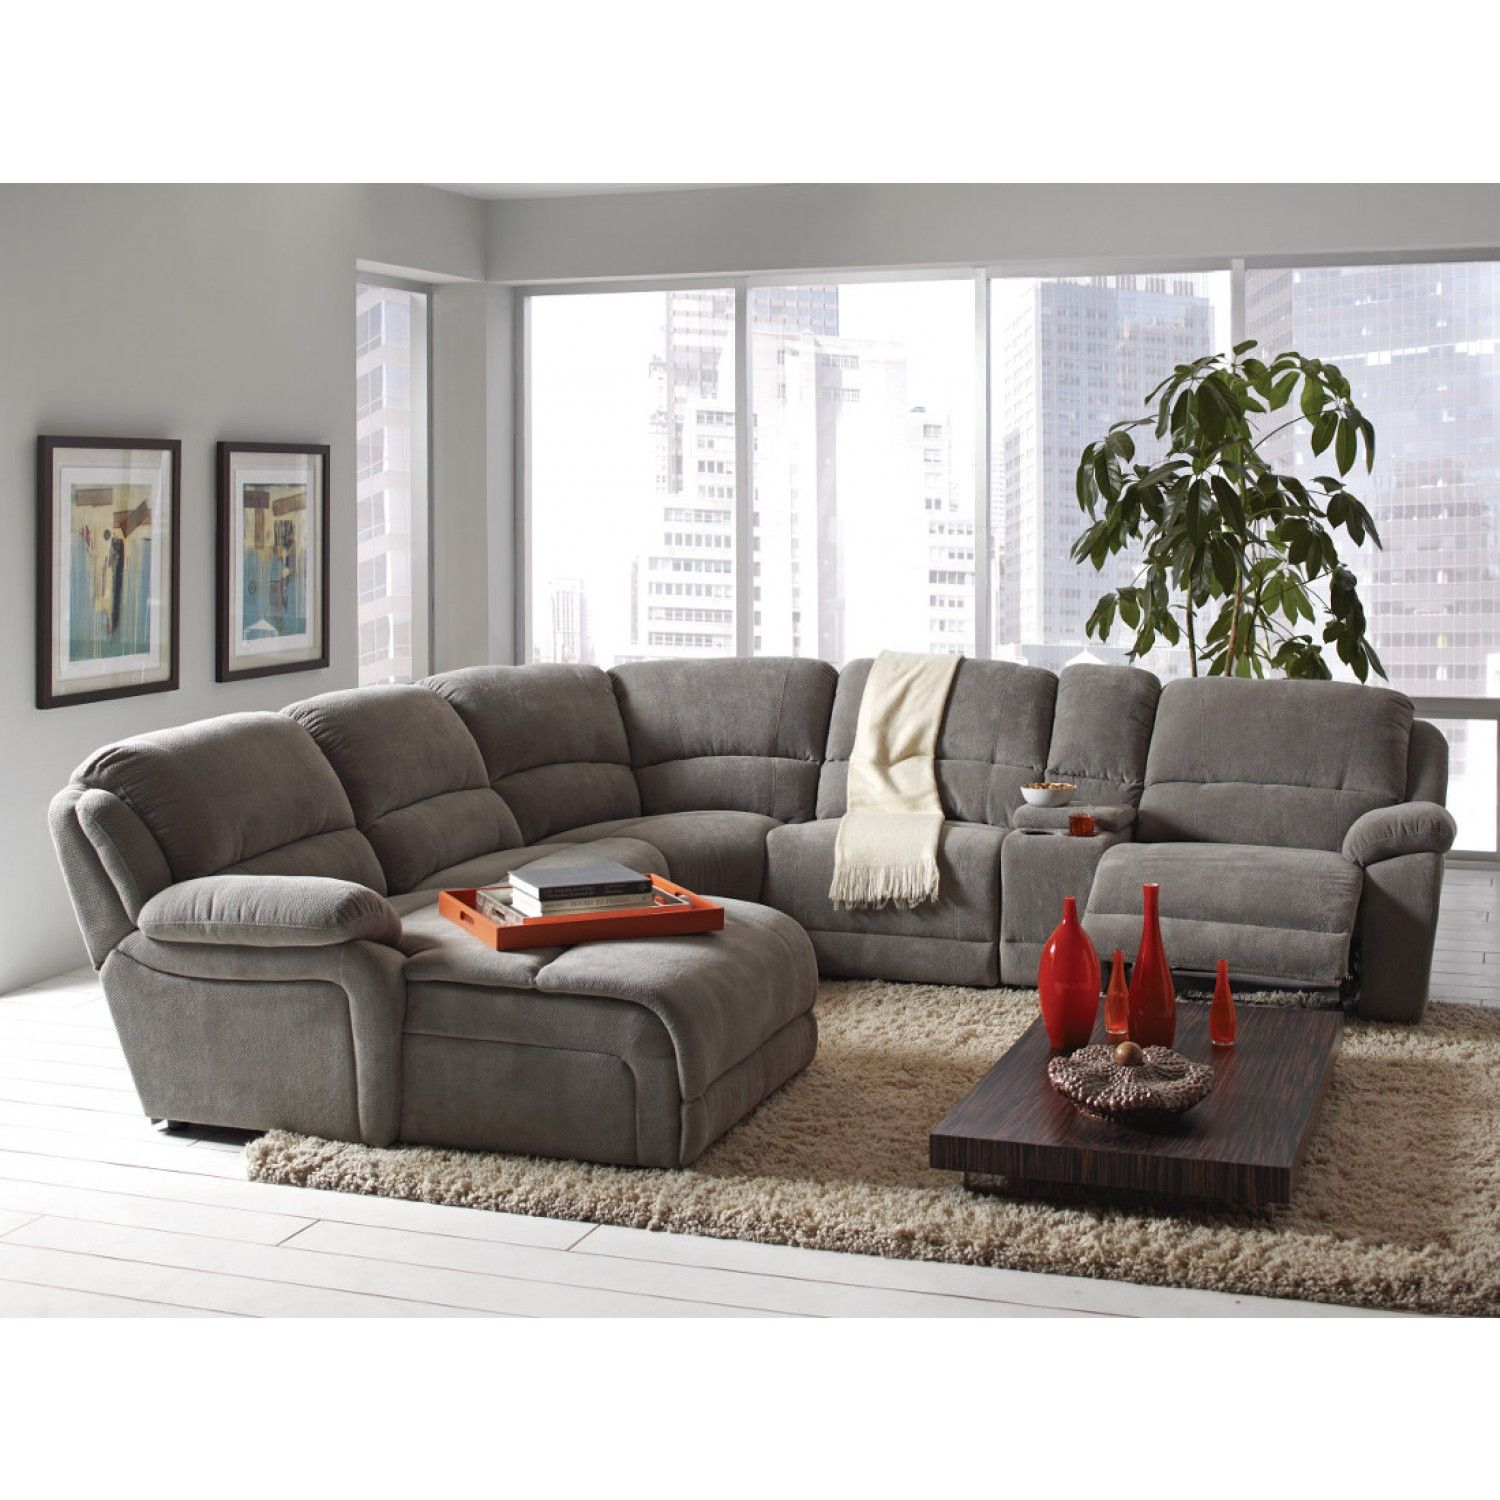 Coaster Mackenzie Silver 6Piece Reclining Sectional Sofa with